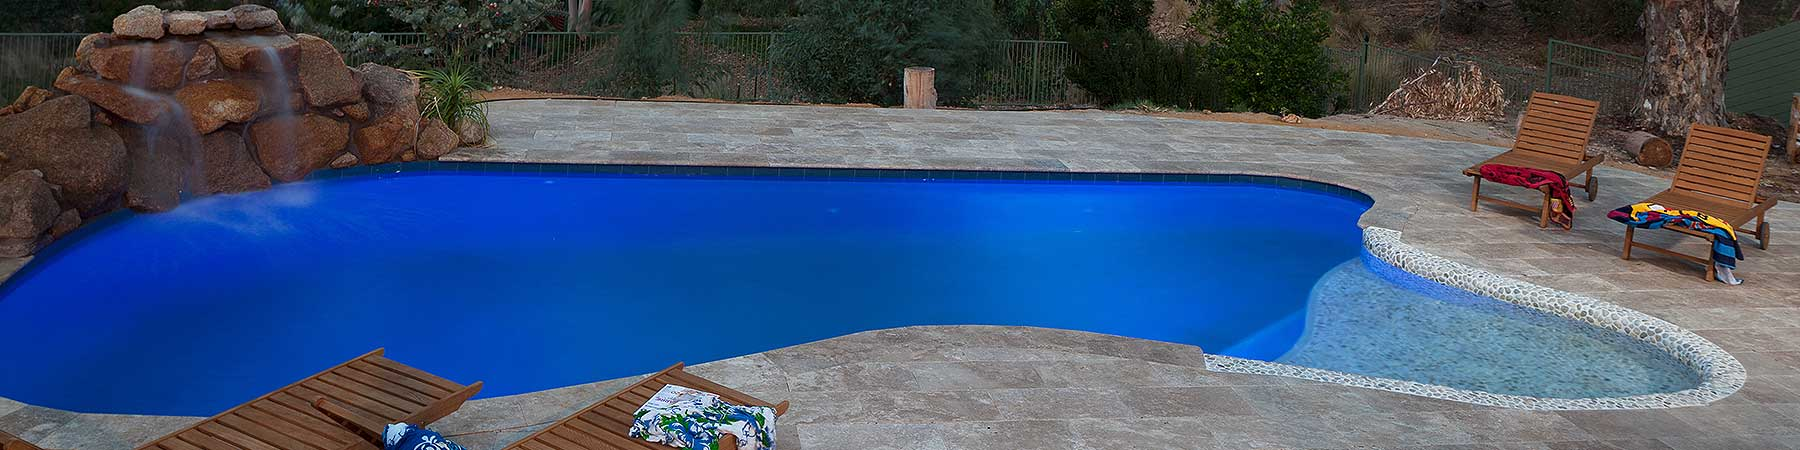 Concrete-Freeform-Pool-Swan-View-2nd-Image